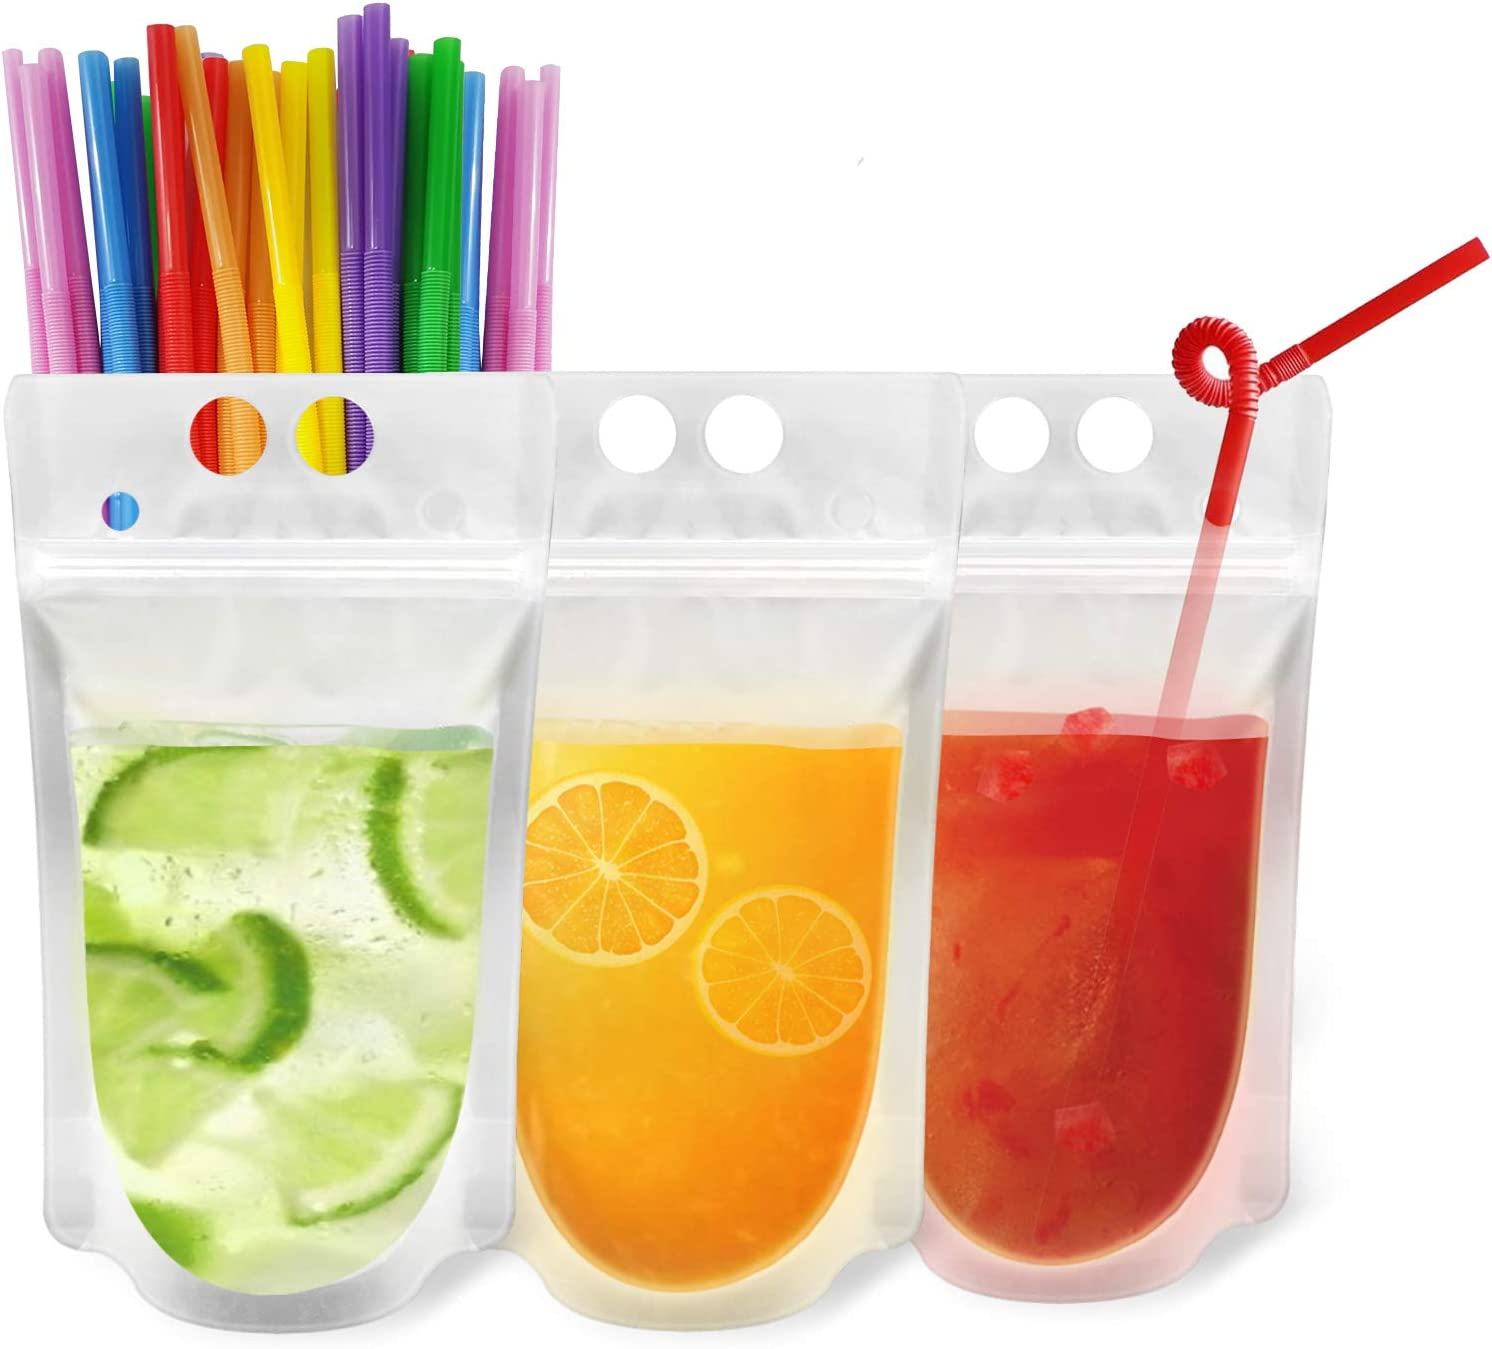 200Pcs Reusable Drink Pouches Clear Drink Bags with Disposable Plastic Straws Smoothie Bags Juice Bags Reclosable Double Zipper Handheld Translucent Stand-up Frozen Drink Pouches for Adults